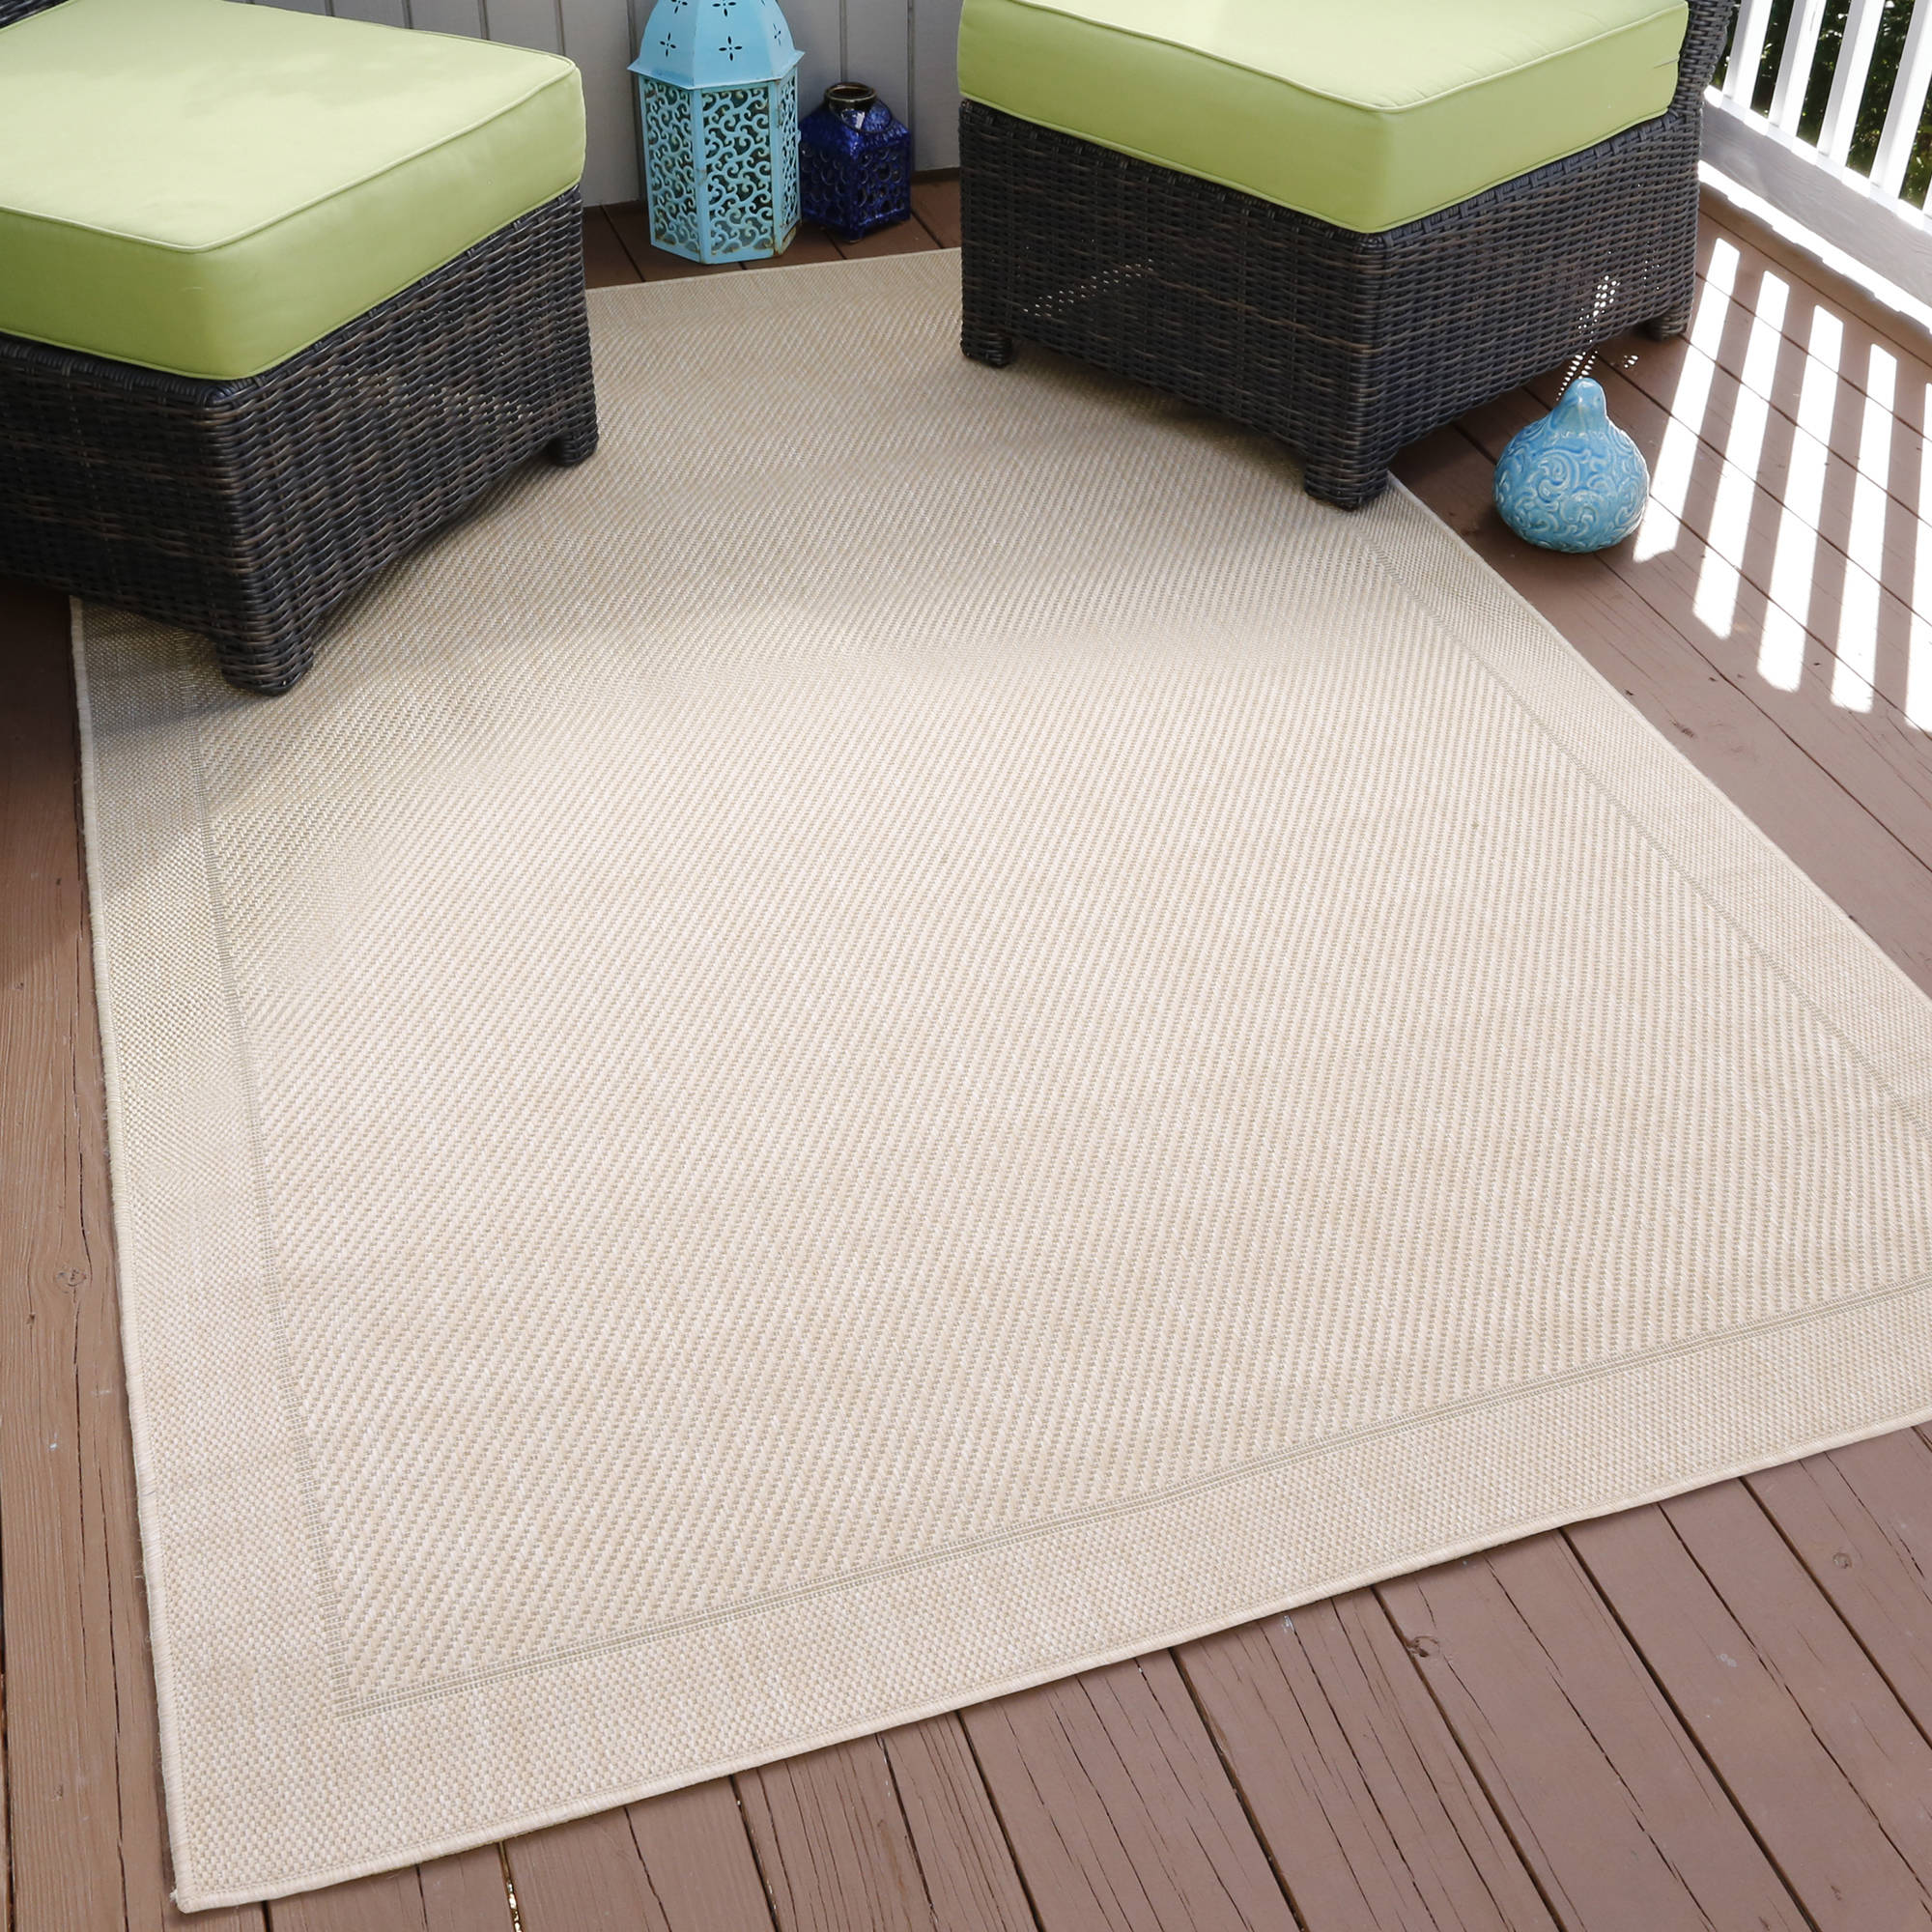 Somerset Home Border Indoor/Outdoor Area Rug, Beige, 5' x 7'7""